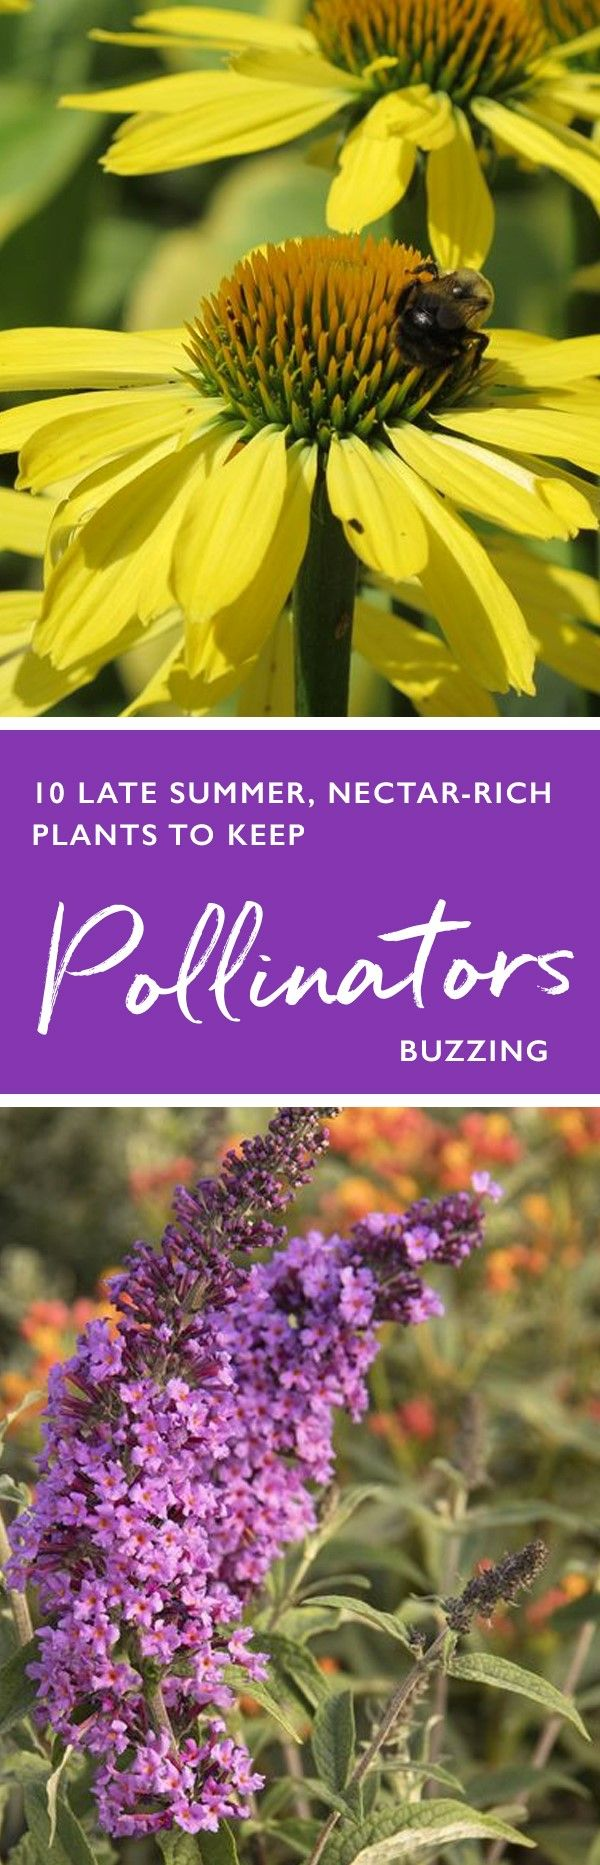 Did you know late-flowering plants bloom late in order to supply pollinators with a constant supply of food right up to last call in autumn? Here are a few late-blooming flowering plants that you can plant right now that'll have pollinators all aflutter come autumn.